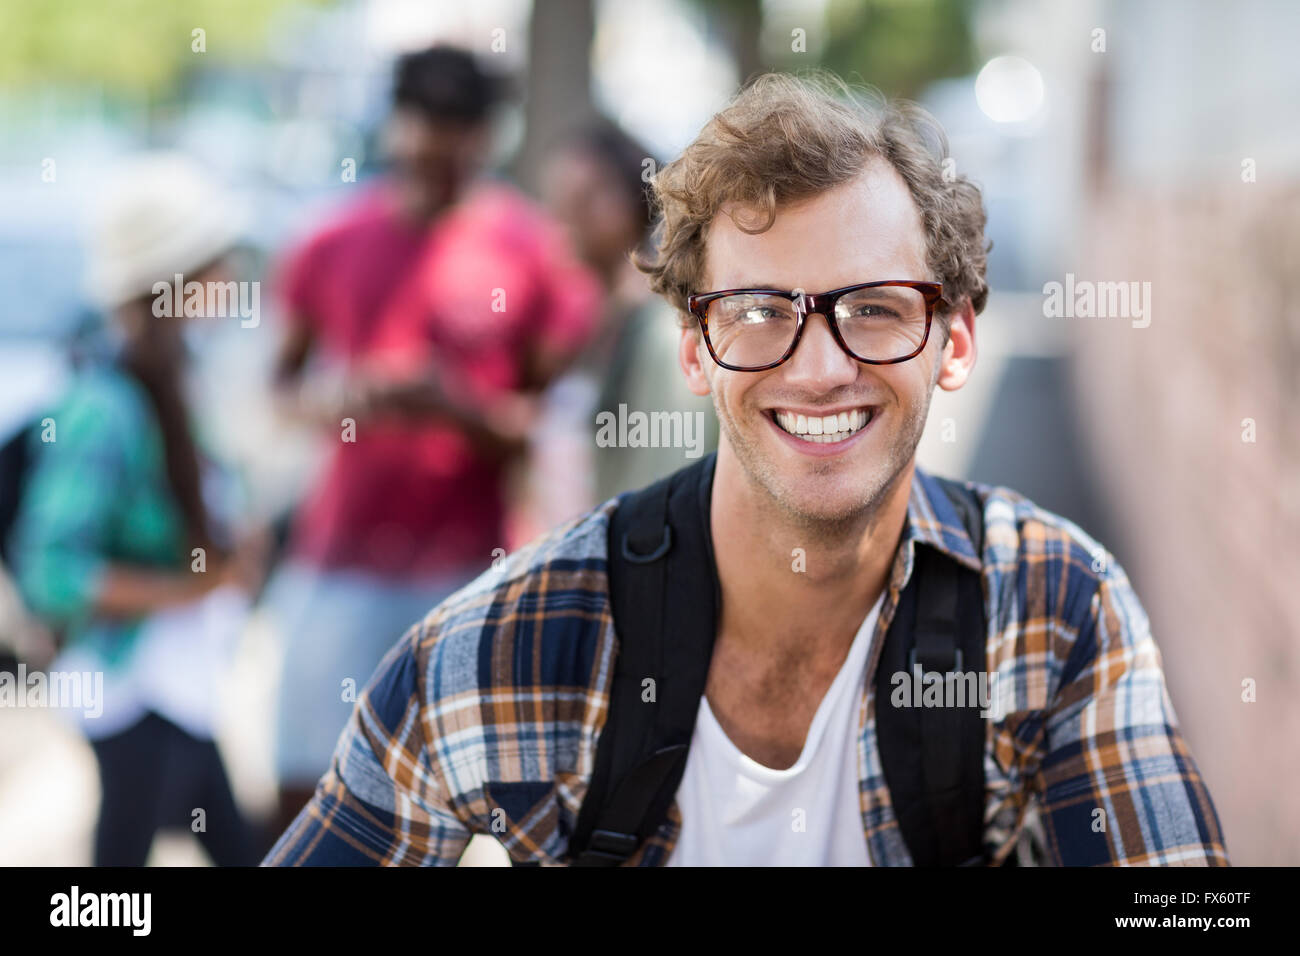 Portrait of young man smiling - Stock Image